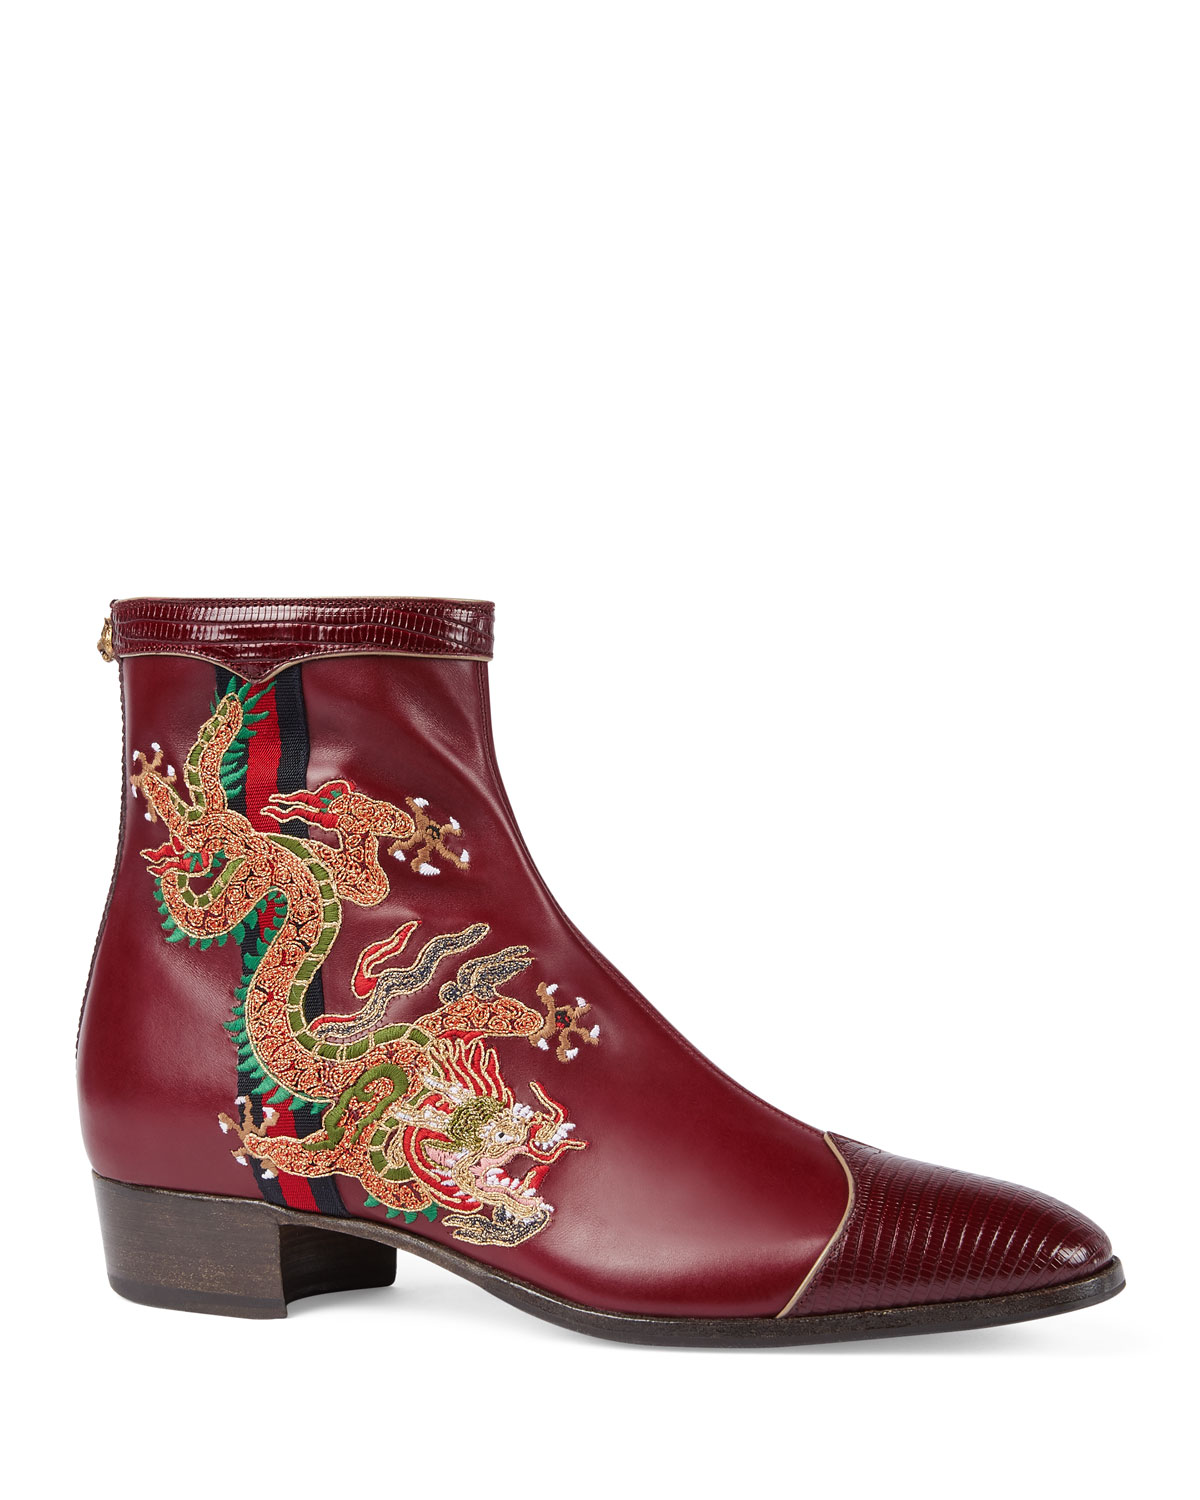 Gucci Leather Boot with Dragon   Neiman